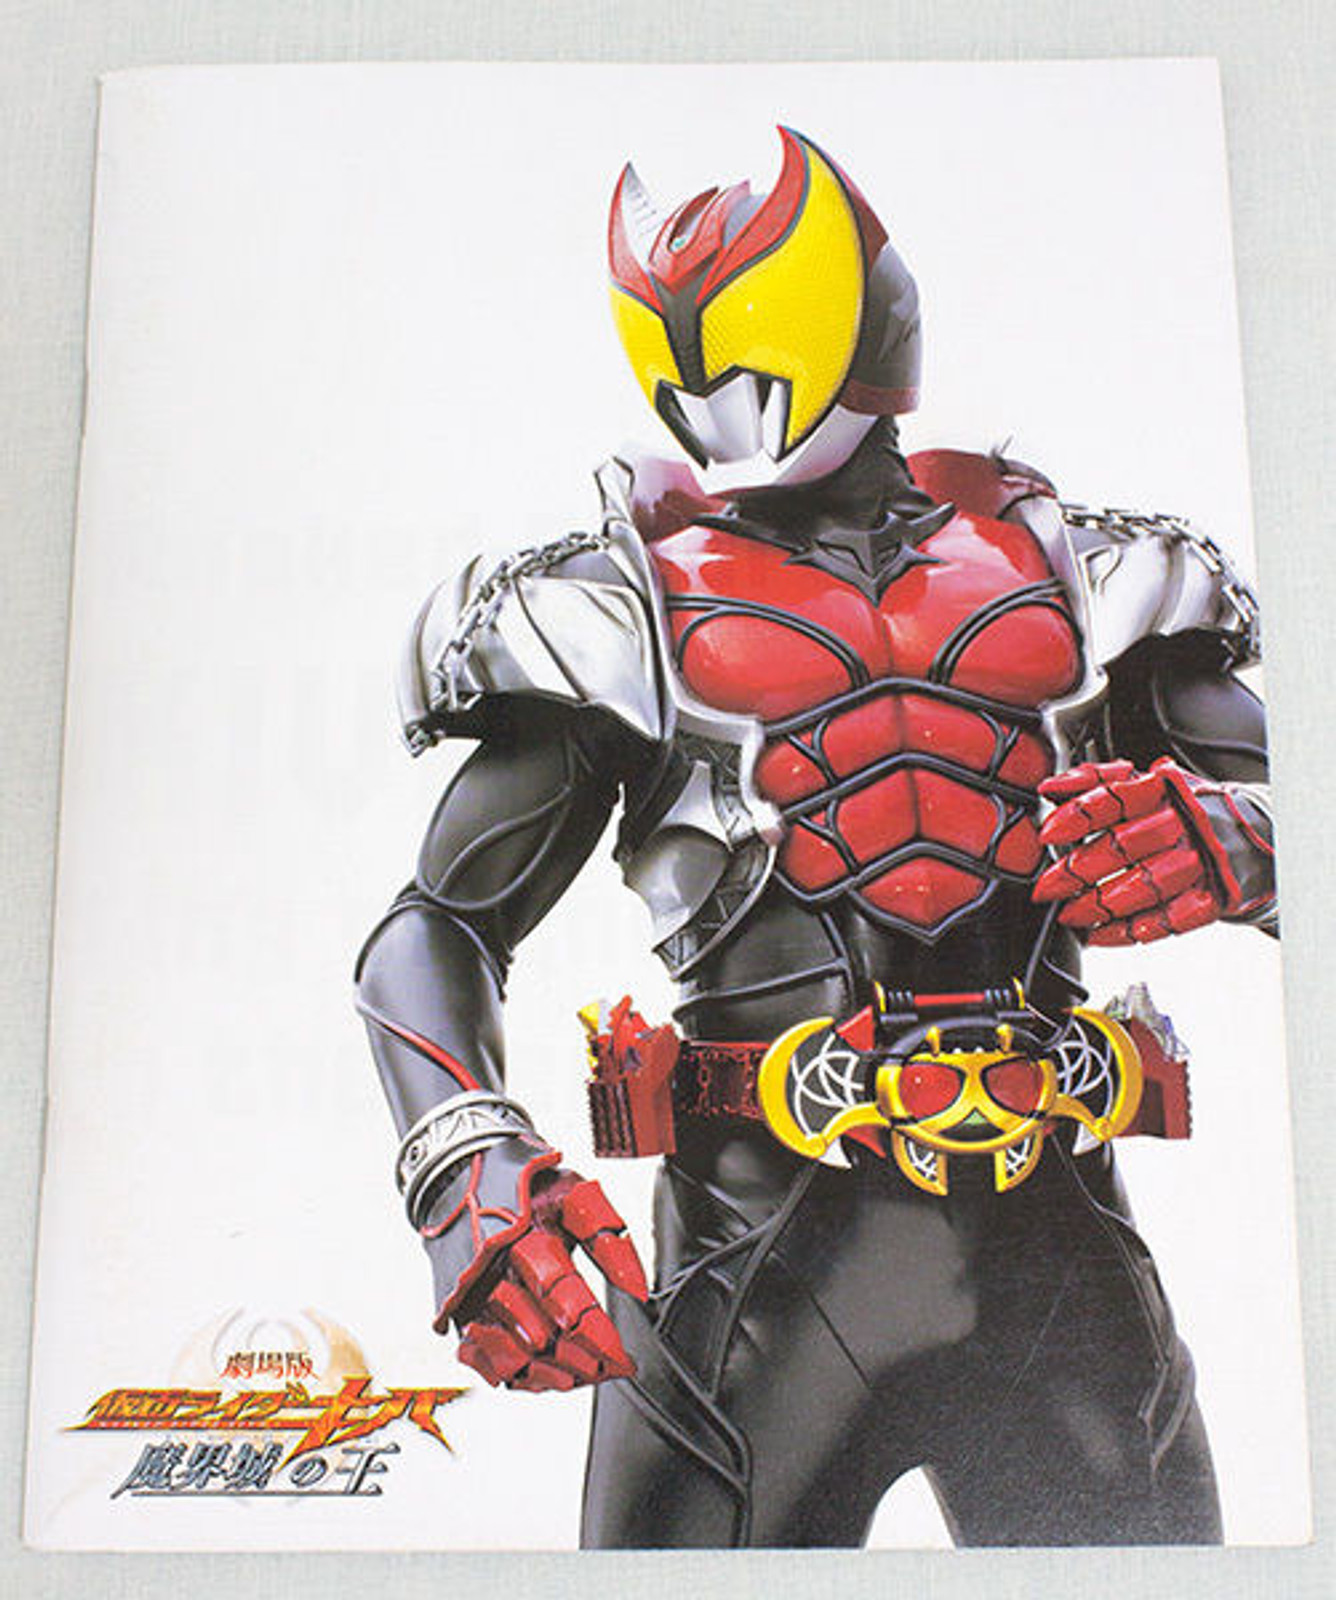 GO-ONGER x Kamen Rider KIBA Movie Program Art Book w/DVD JAPAN TOKUSATSU